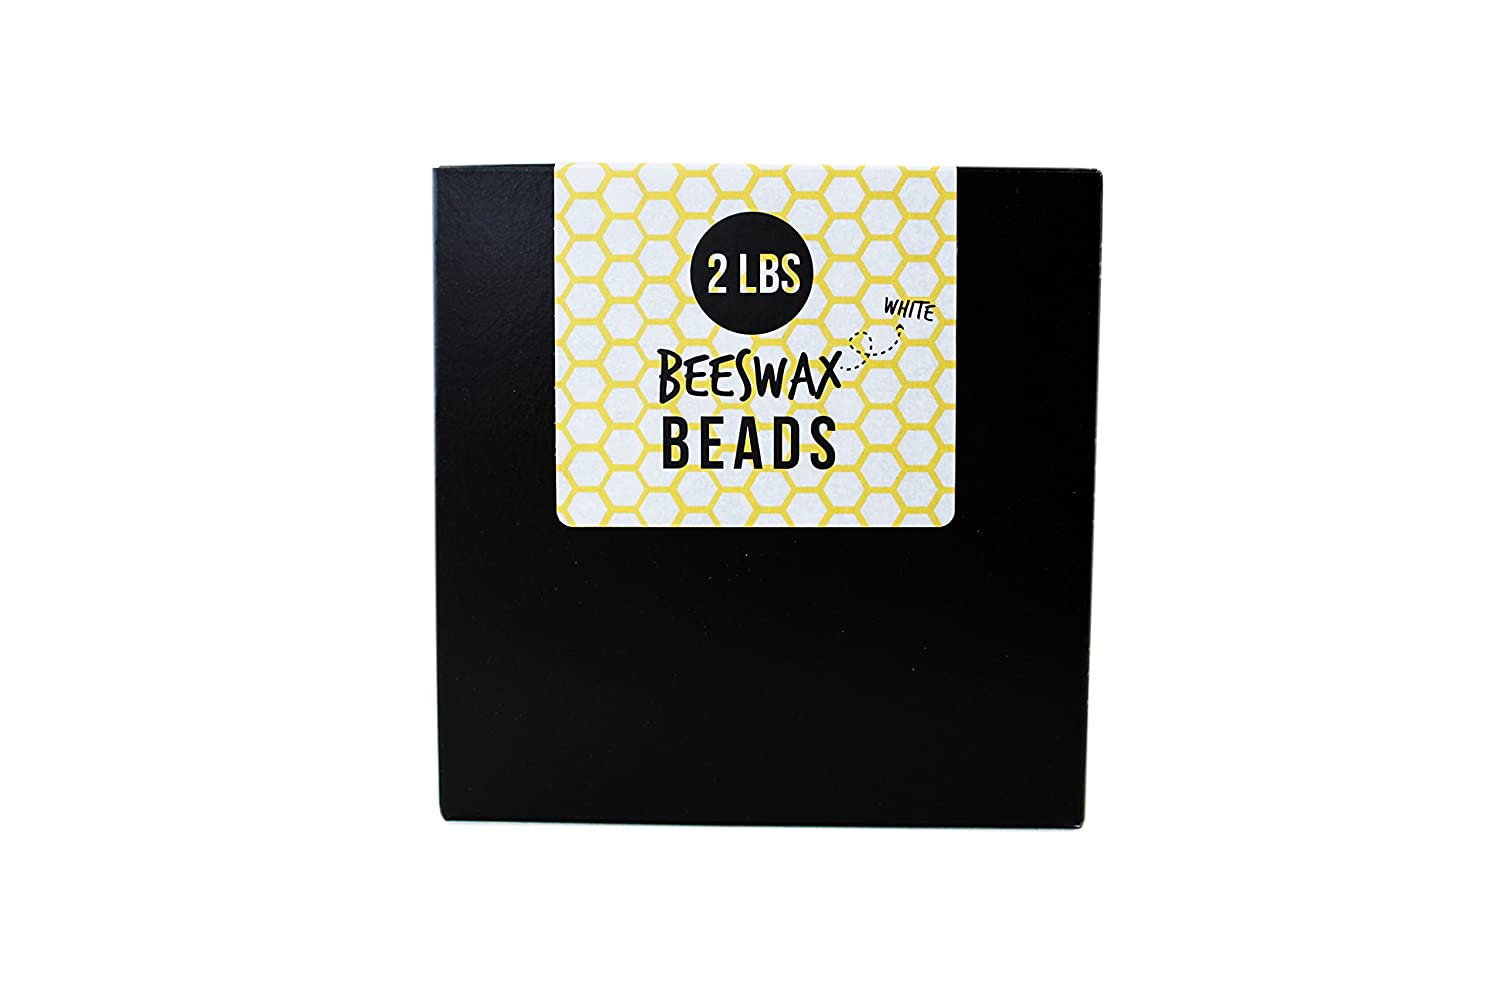 All-Natural Beeswax Beads / Pastilles - Pure, Cosmetic Grade (2 Pounds, Yellow) American Soy Organics